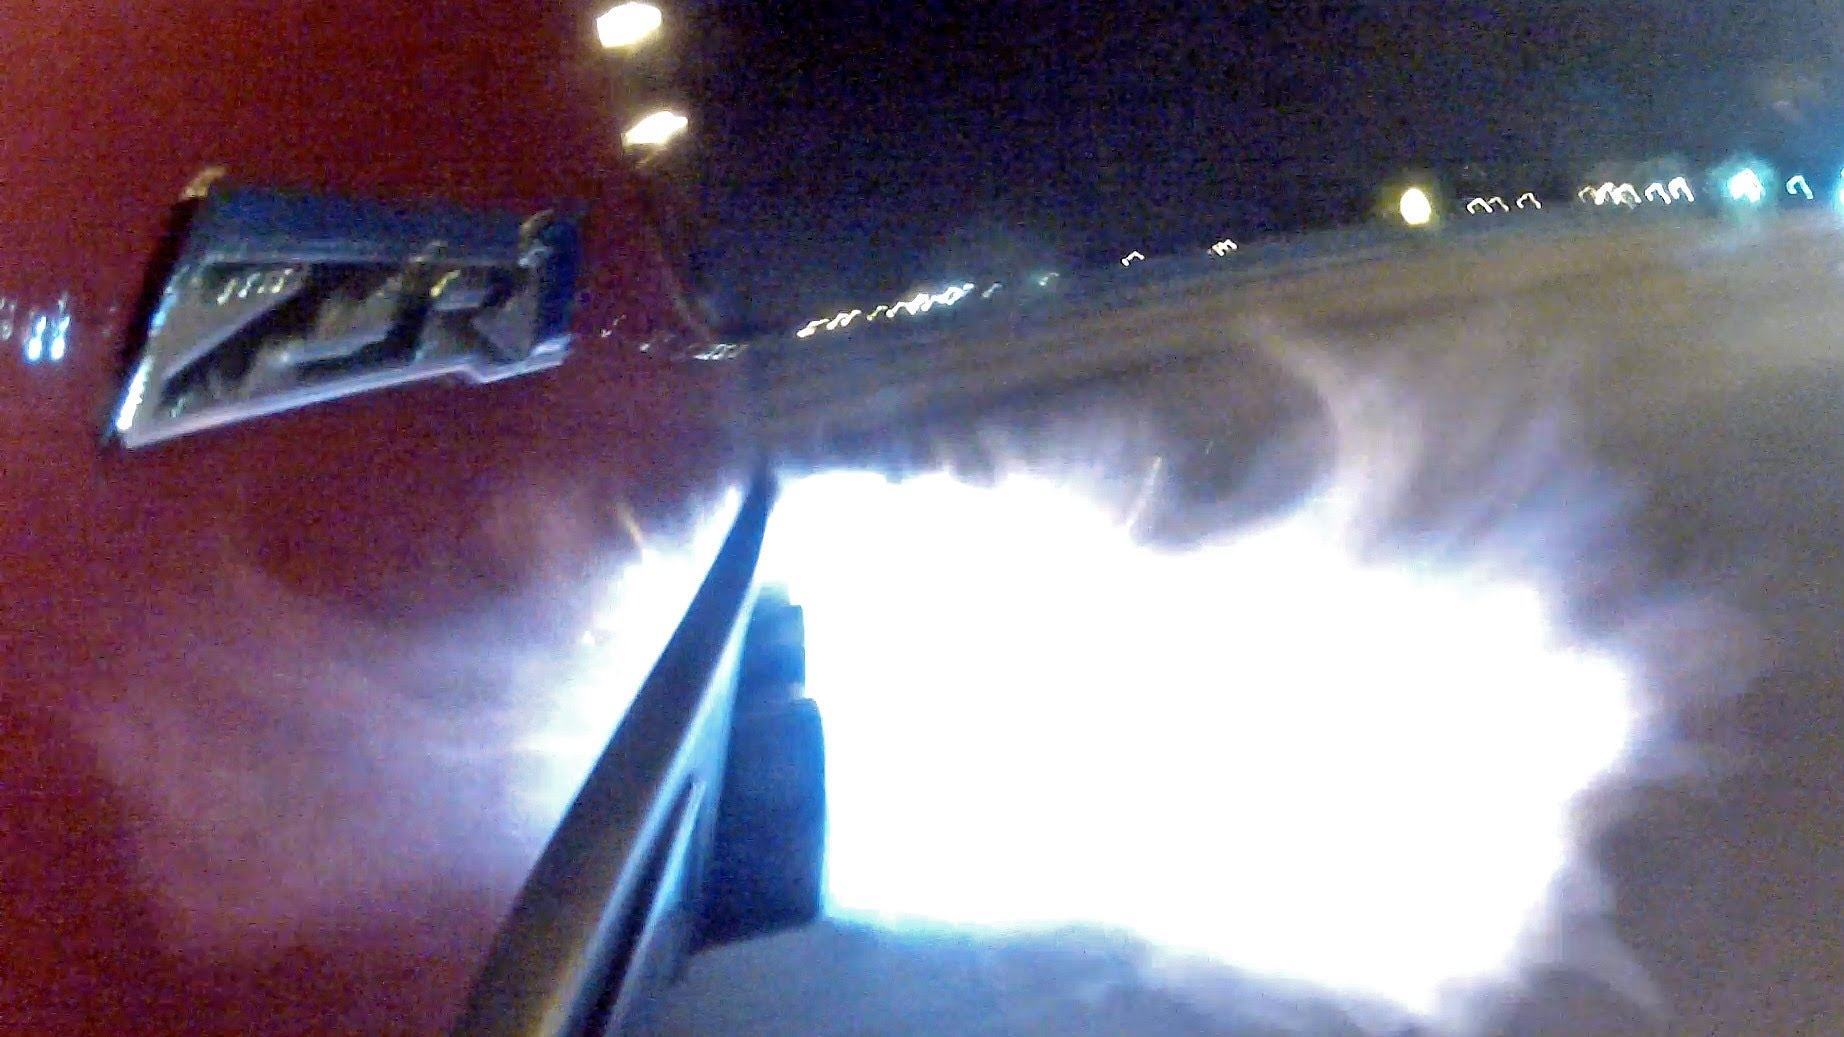 Street Racing a 730hp Fire Breathing Corvette ZR1 From HELL